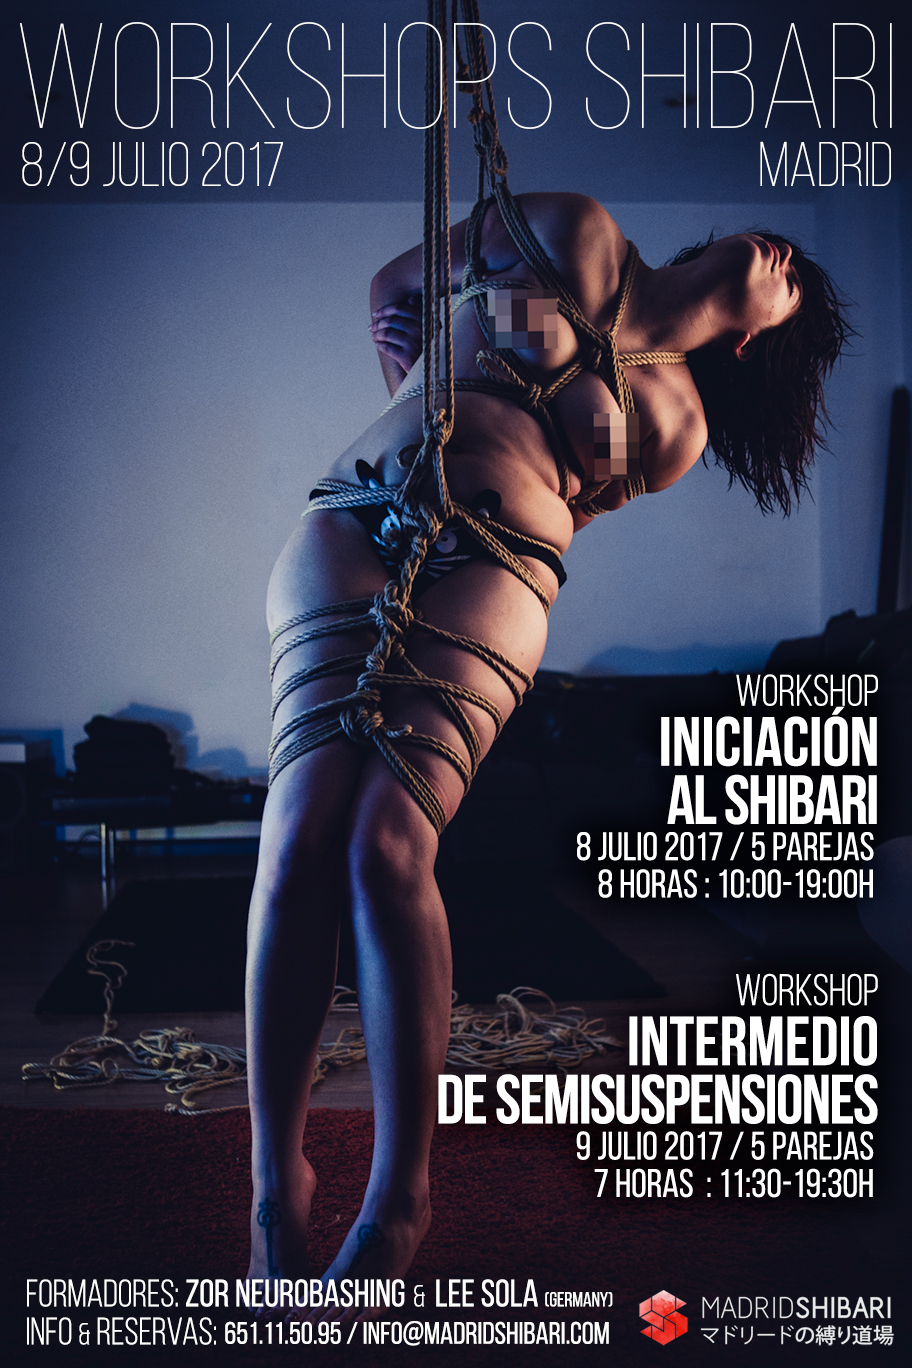 Workshop INTERMEDIO DE SEMISUSPENSIONES (Madrid) @  Madrid Shibari Dojo. | Madrid | Comunidad de Madrid | España